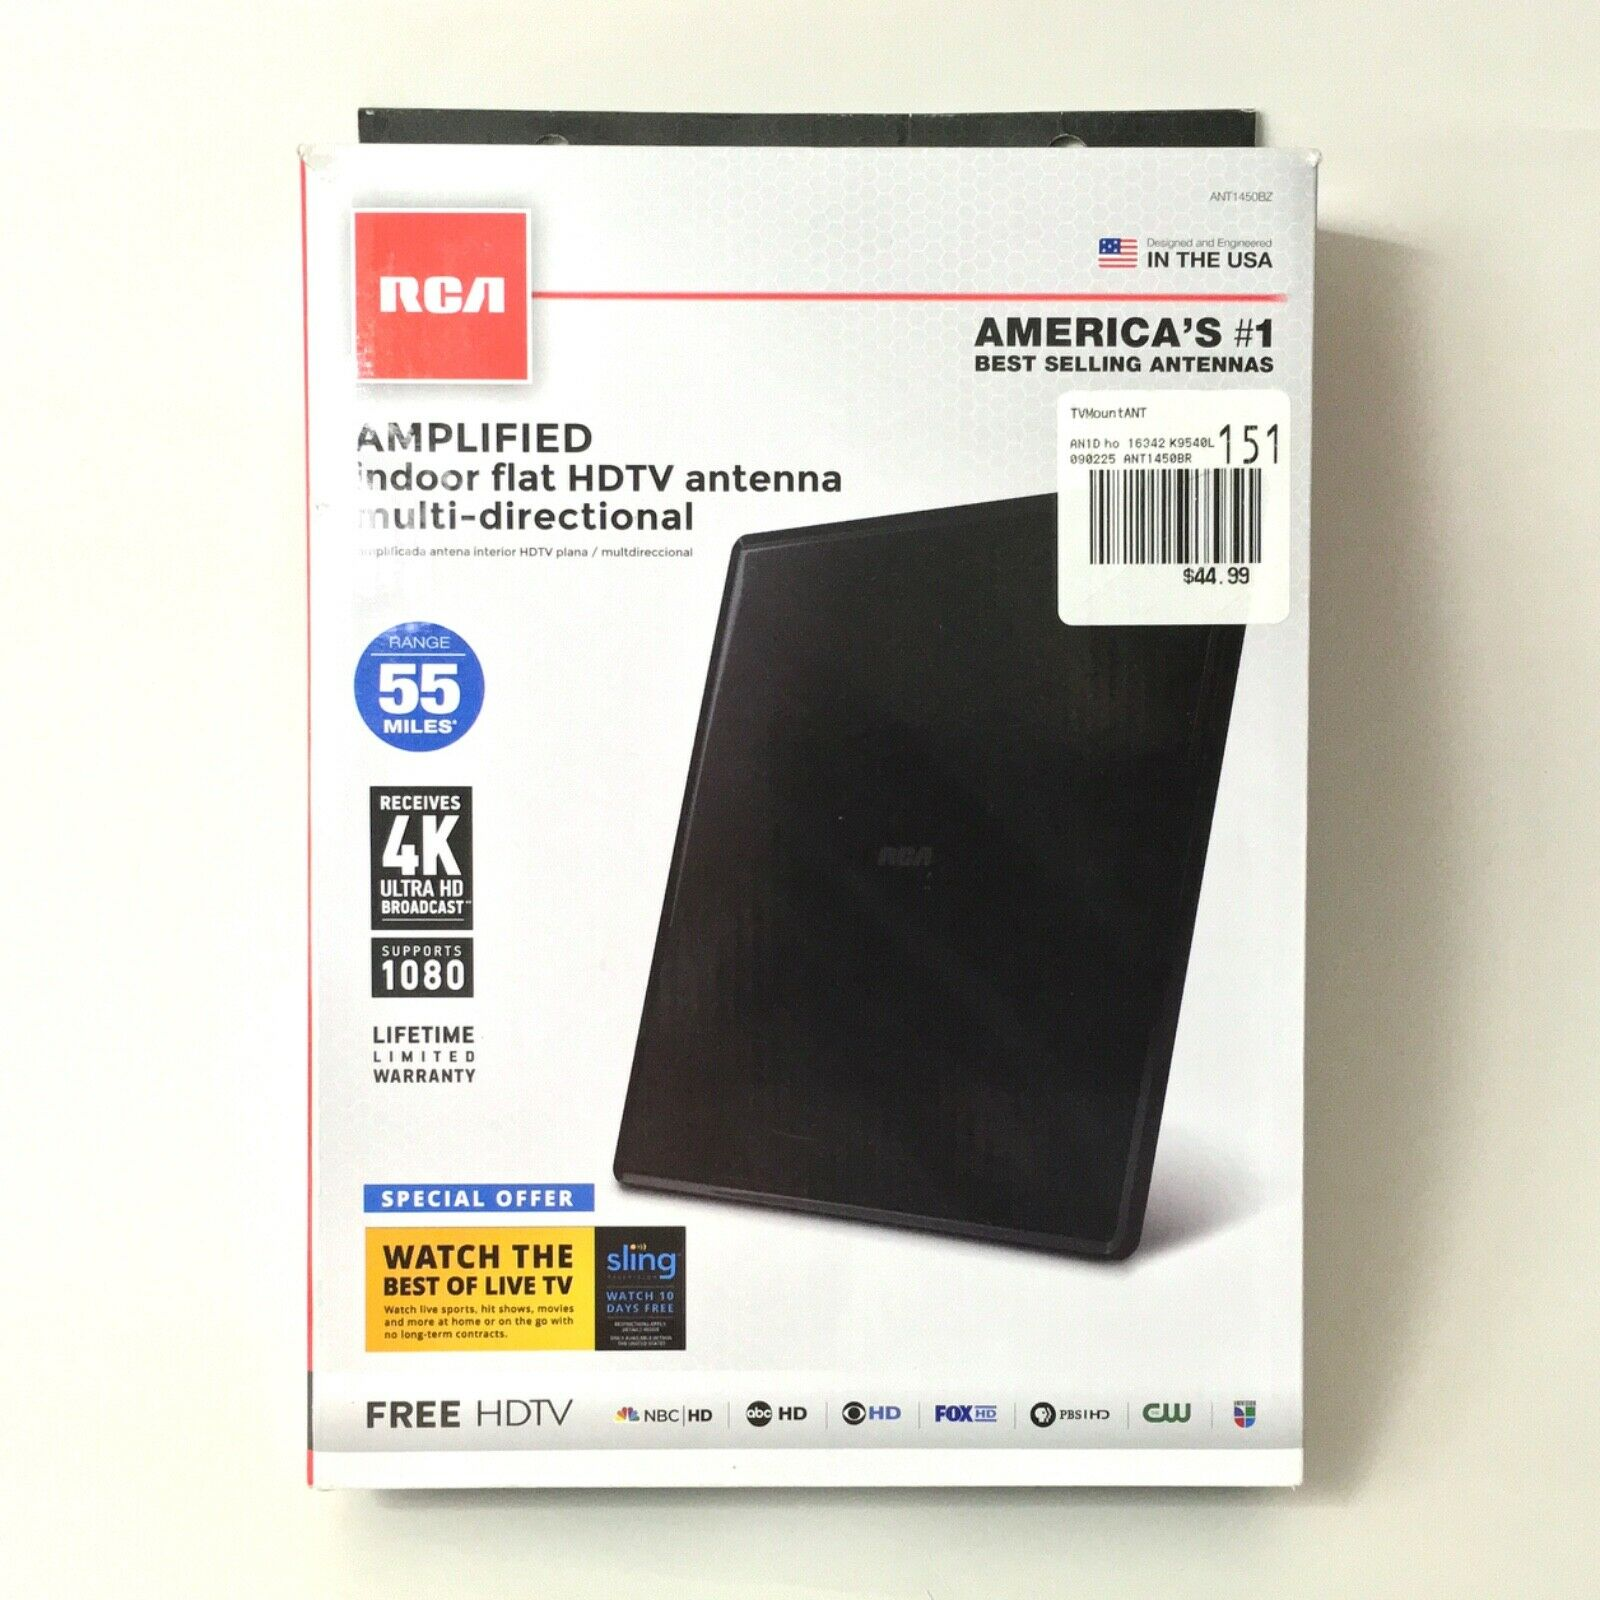 RCA Amplified Indoor Flat HDTV Antenna Multi-directional - M